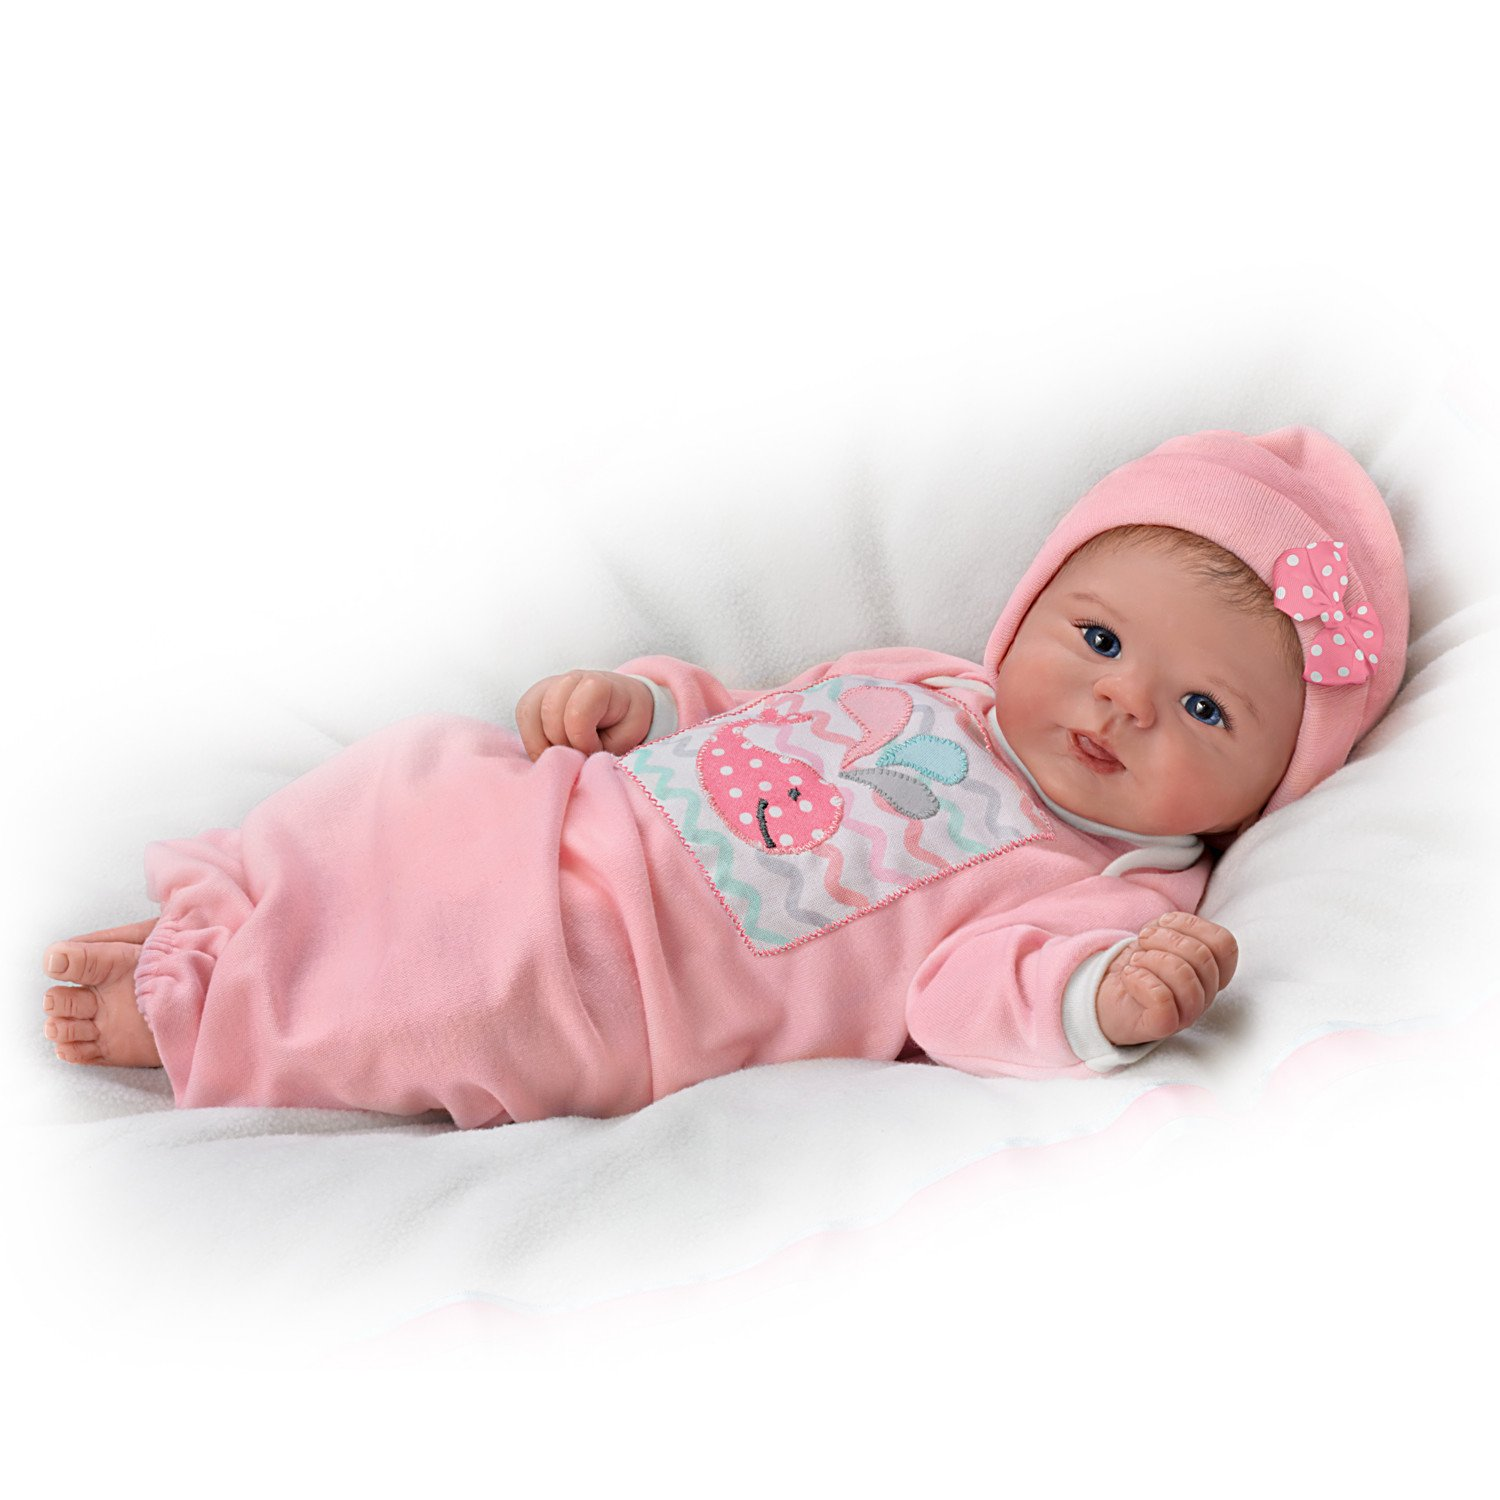 Violet Parker Lifelike Baby Girl Doll Weighted for Realism by The Ashton-Drake Galleries by The Ashton-Drake Galleries